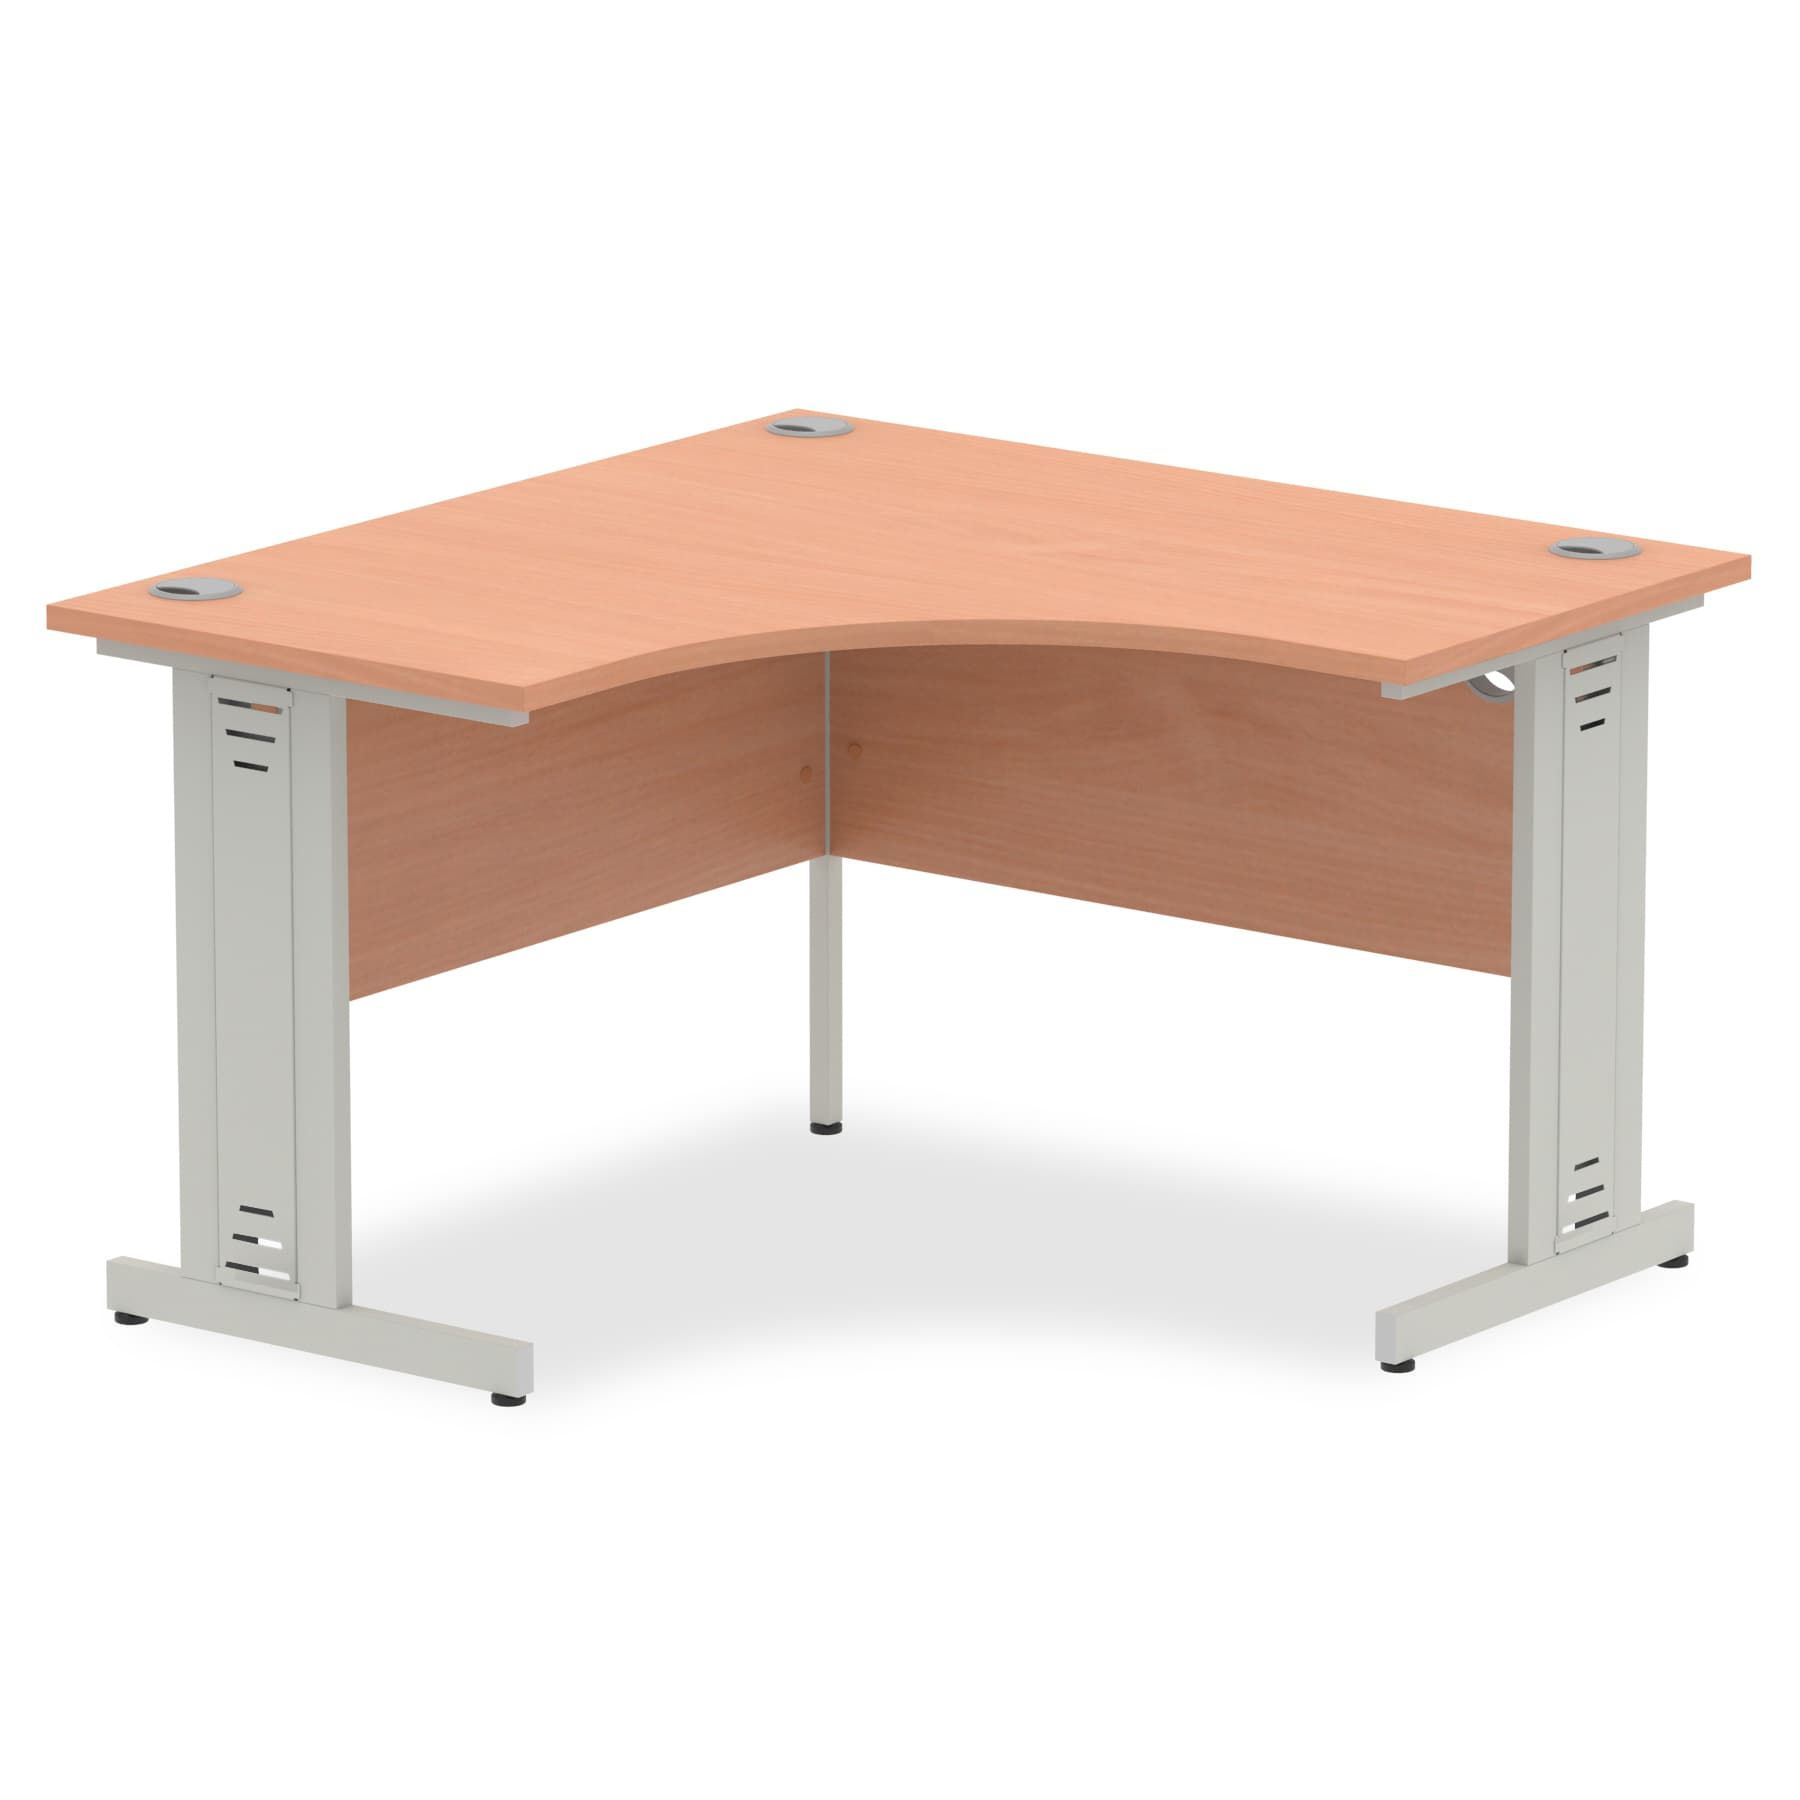 Impulse 1200 Corner Desk with Cable Managed Leg